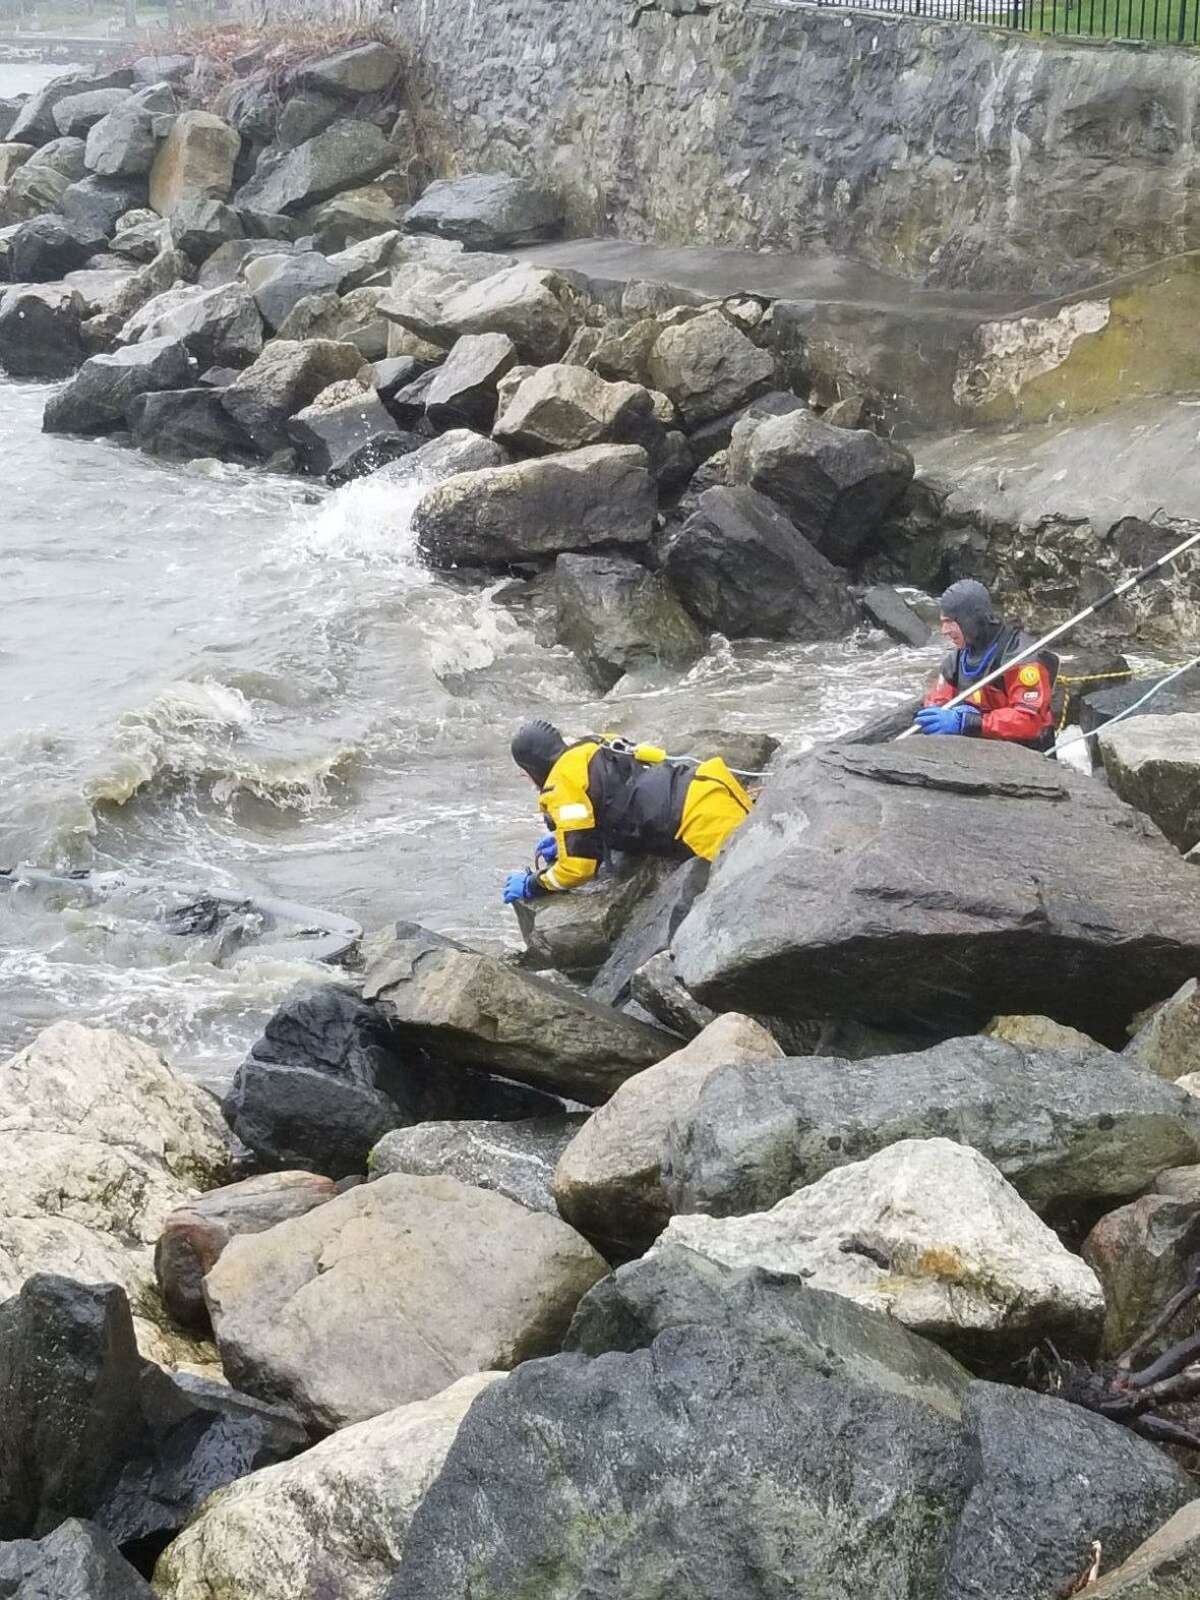 Stamford firefighters during a search and rescue on Sunday, April 26.